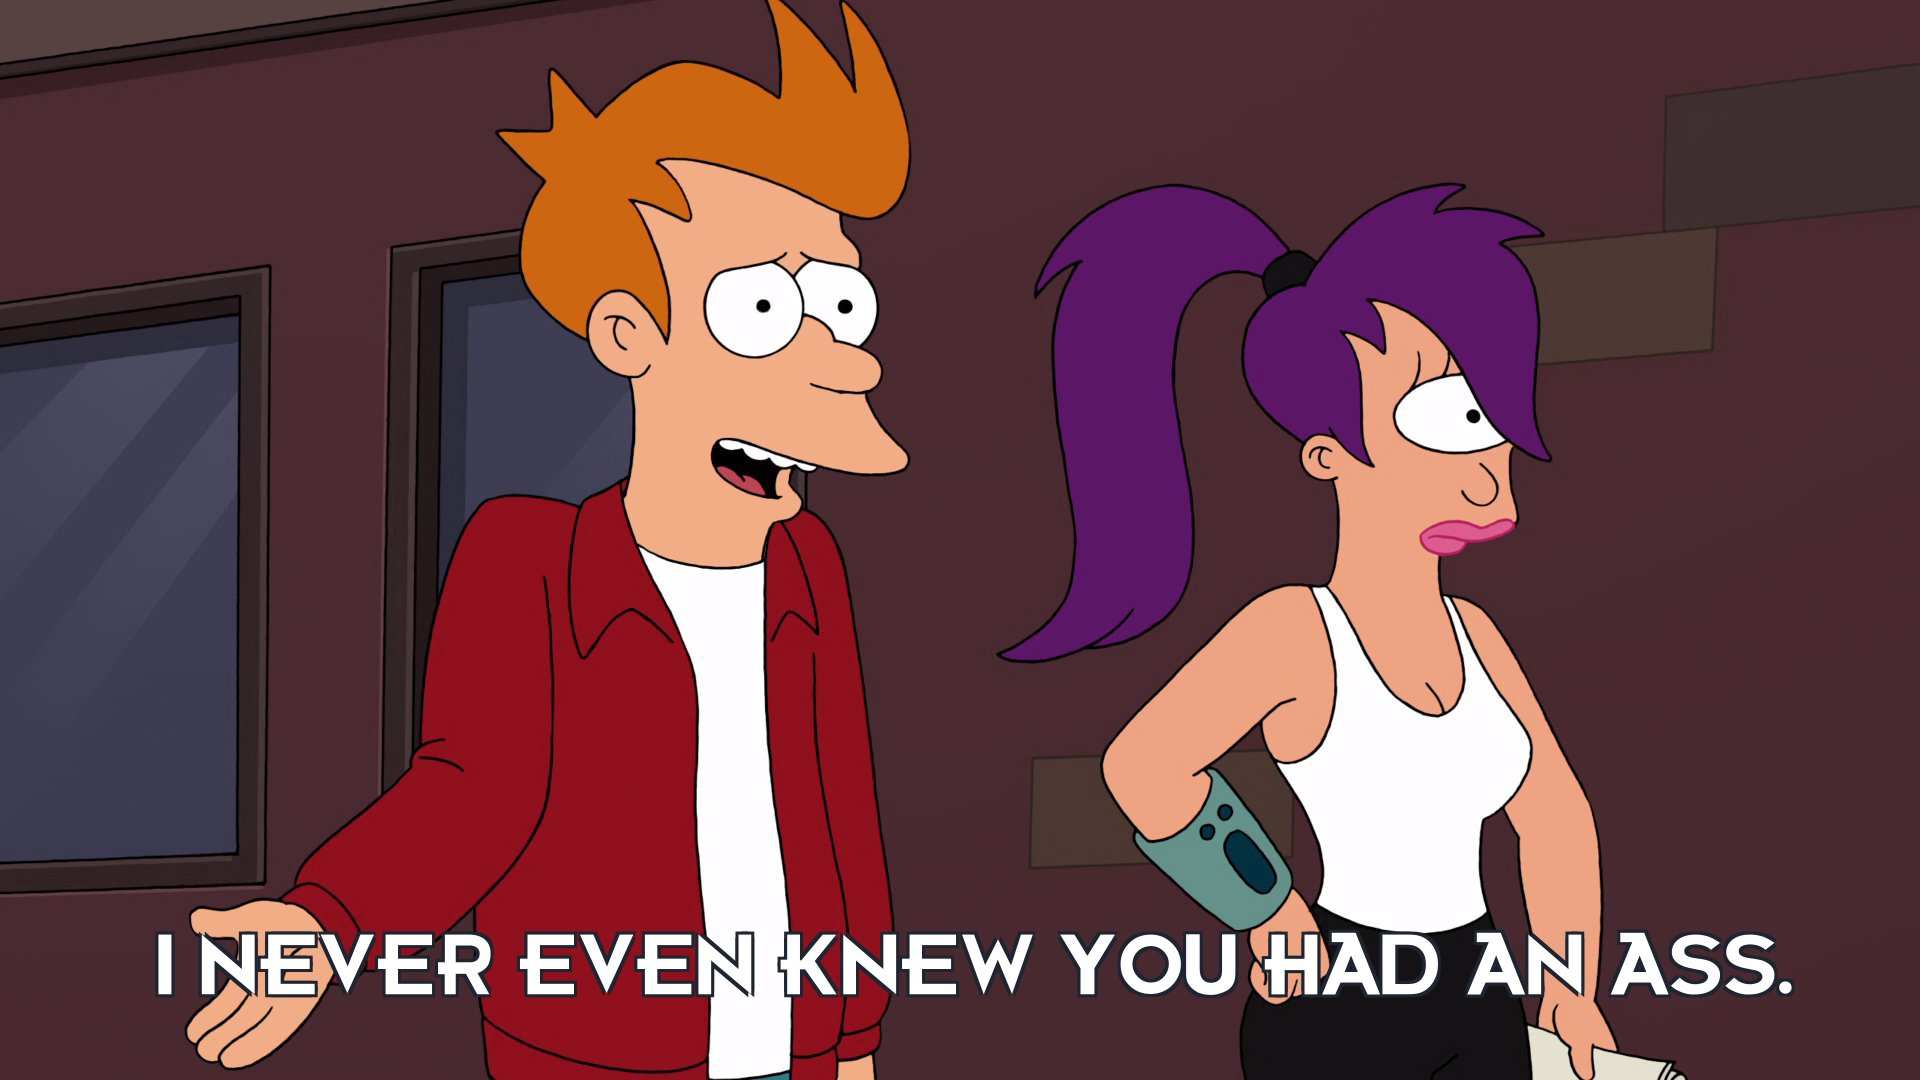 Philip J Fry: I never even knew you had an ass.